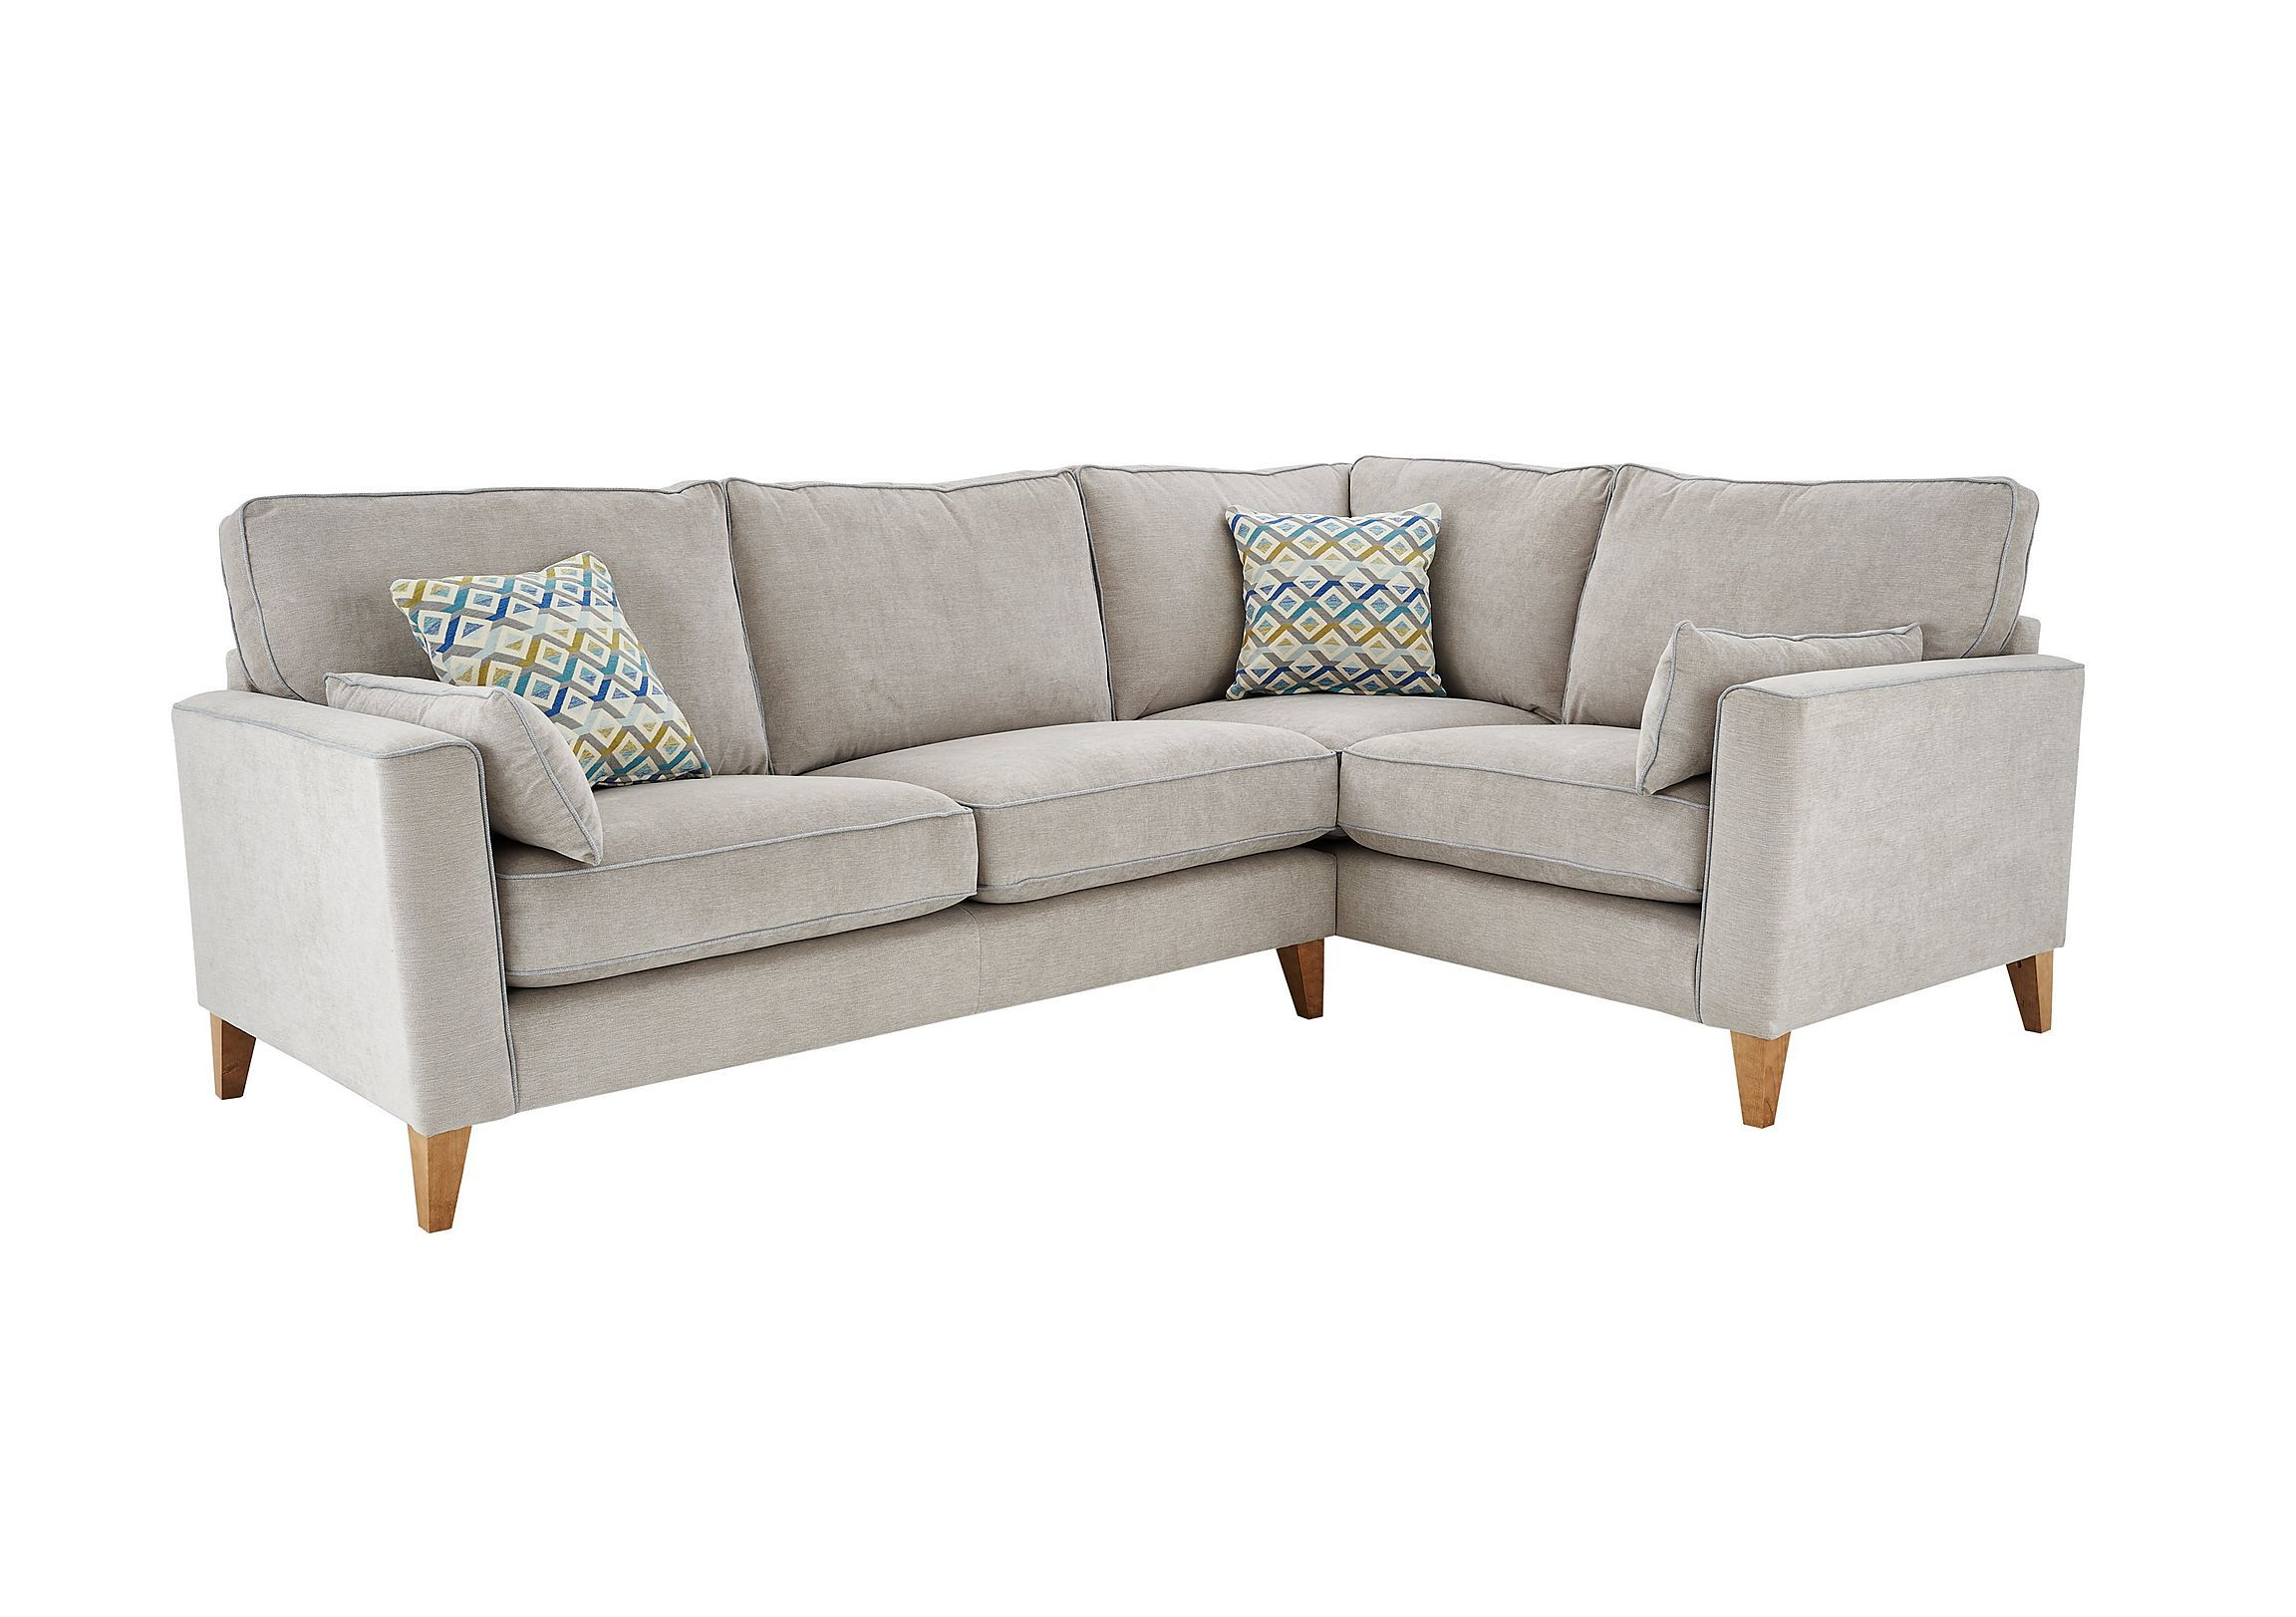 John Lewis Leon Sofa We Want This But In Turquoise Zinc Left Arm Facing Corner Group